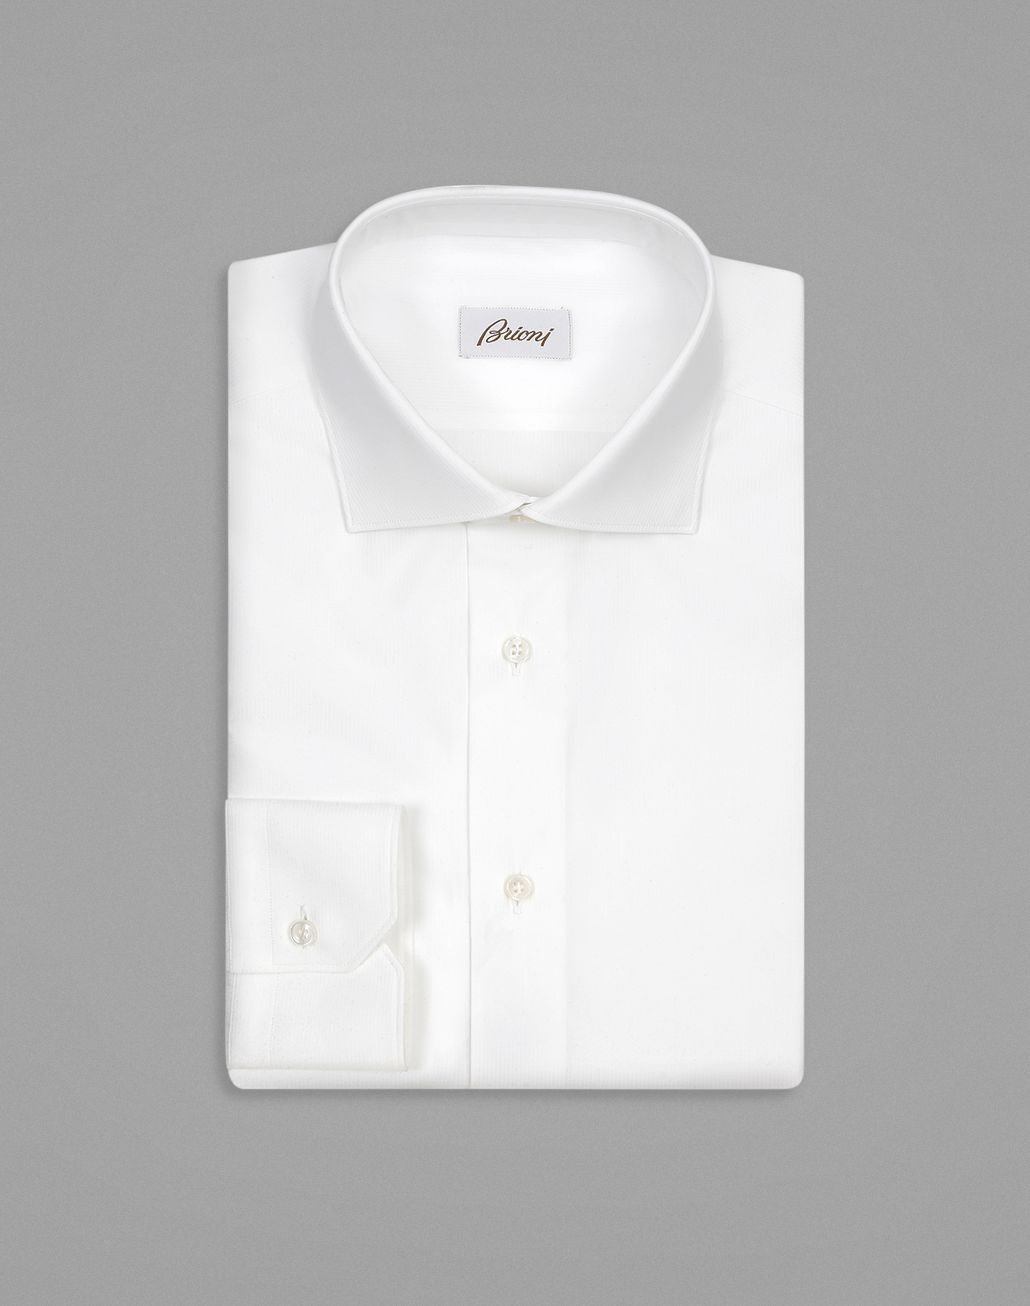 BRIONI White Tone on Tone Striped Formal Shirt Formal shirt Man f